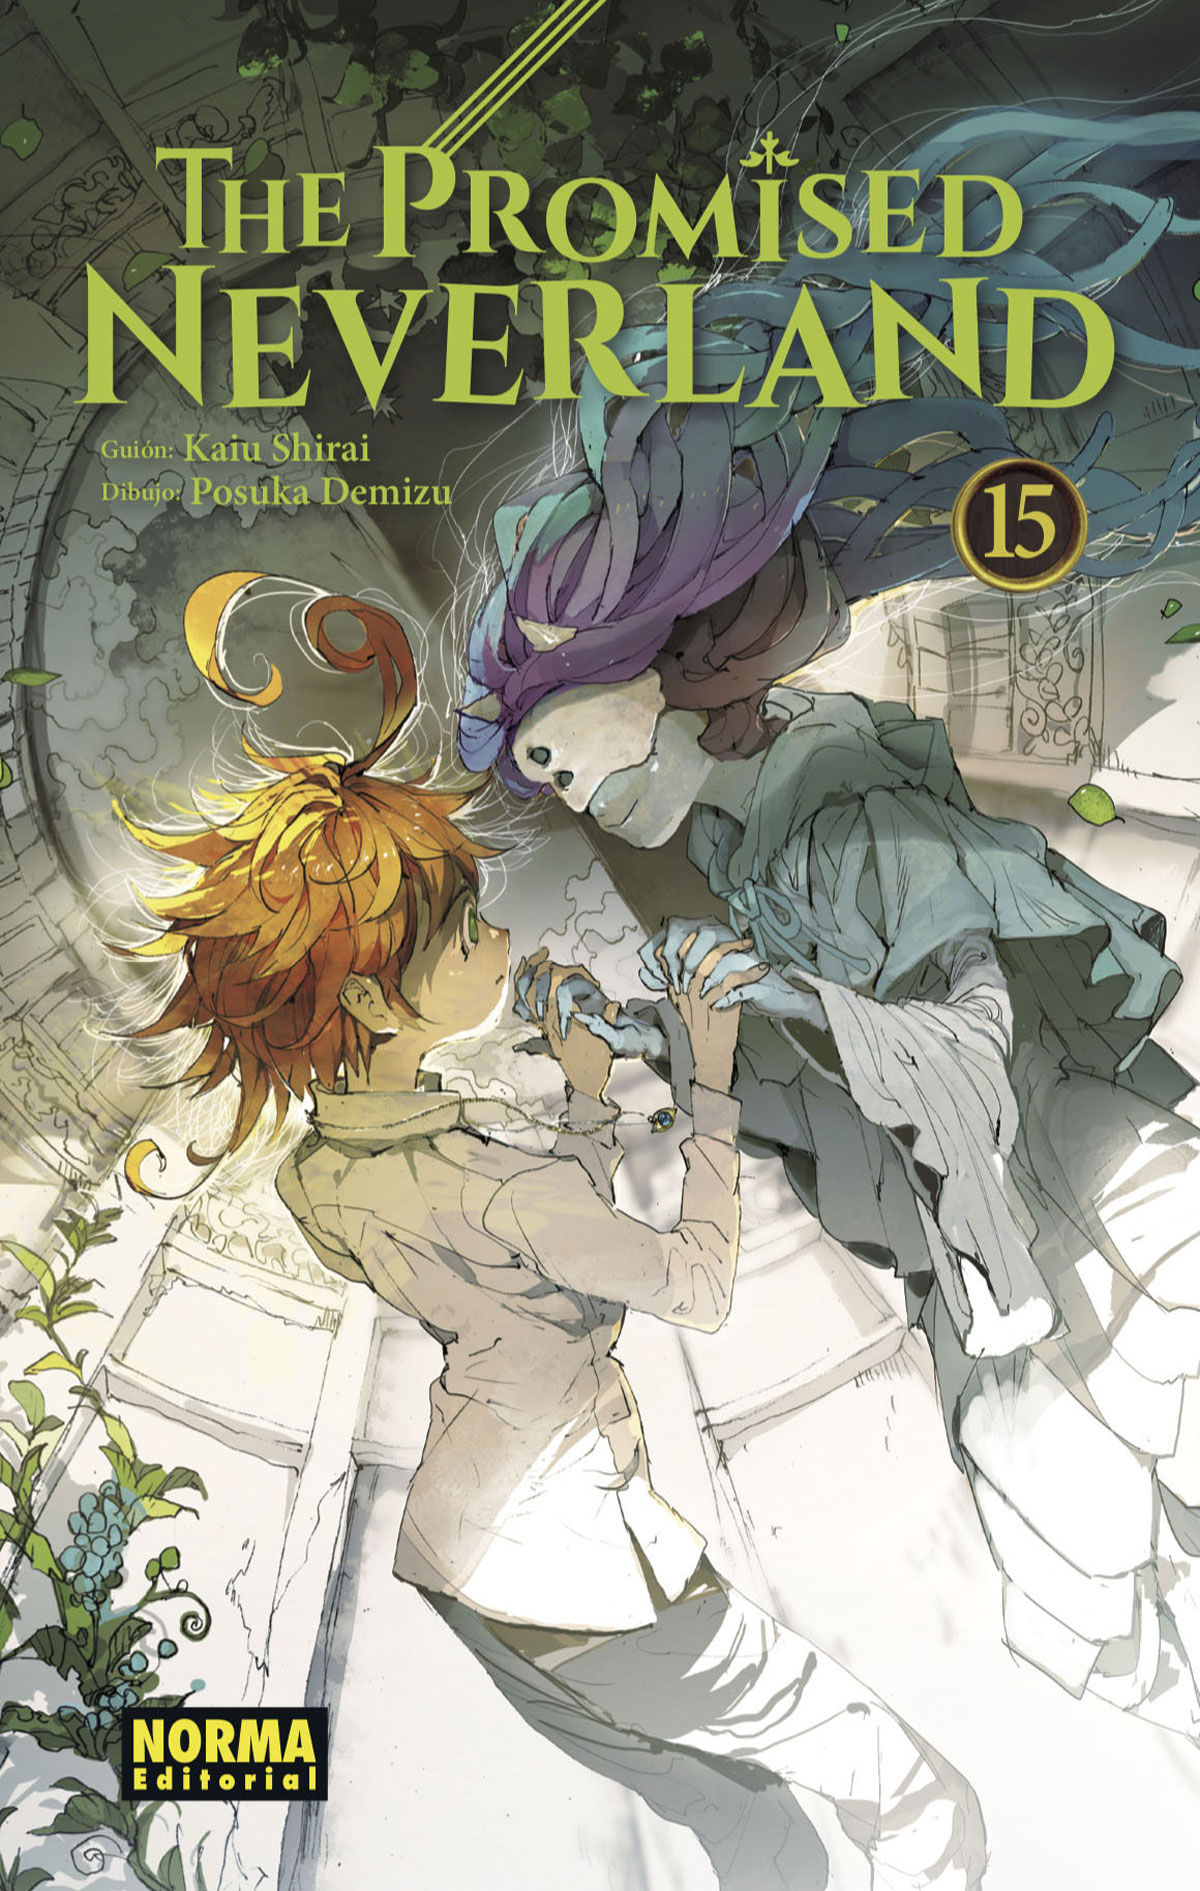 PROMISED NEVERLAND 15 THE